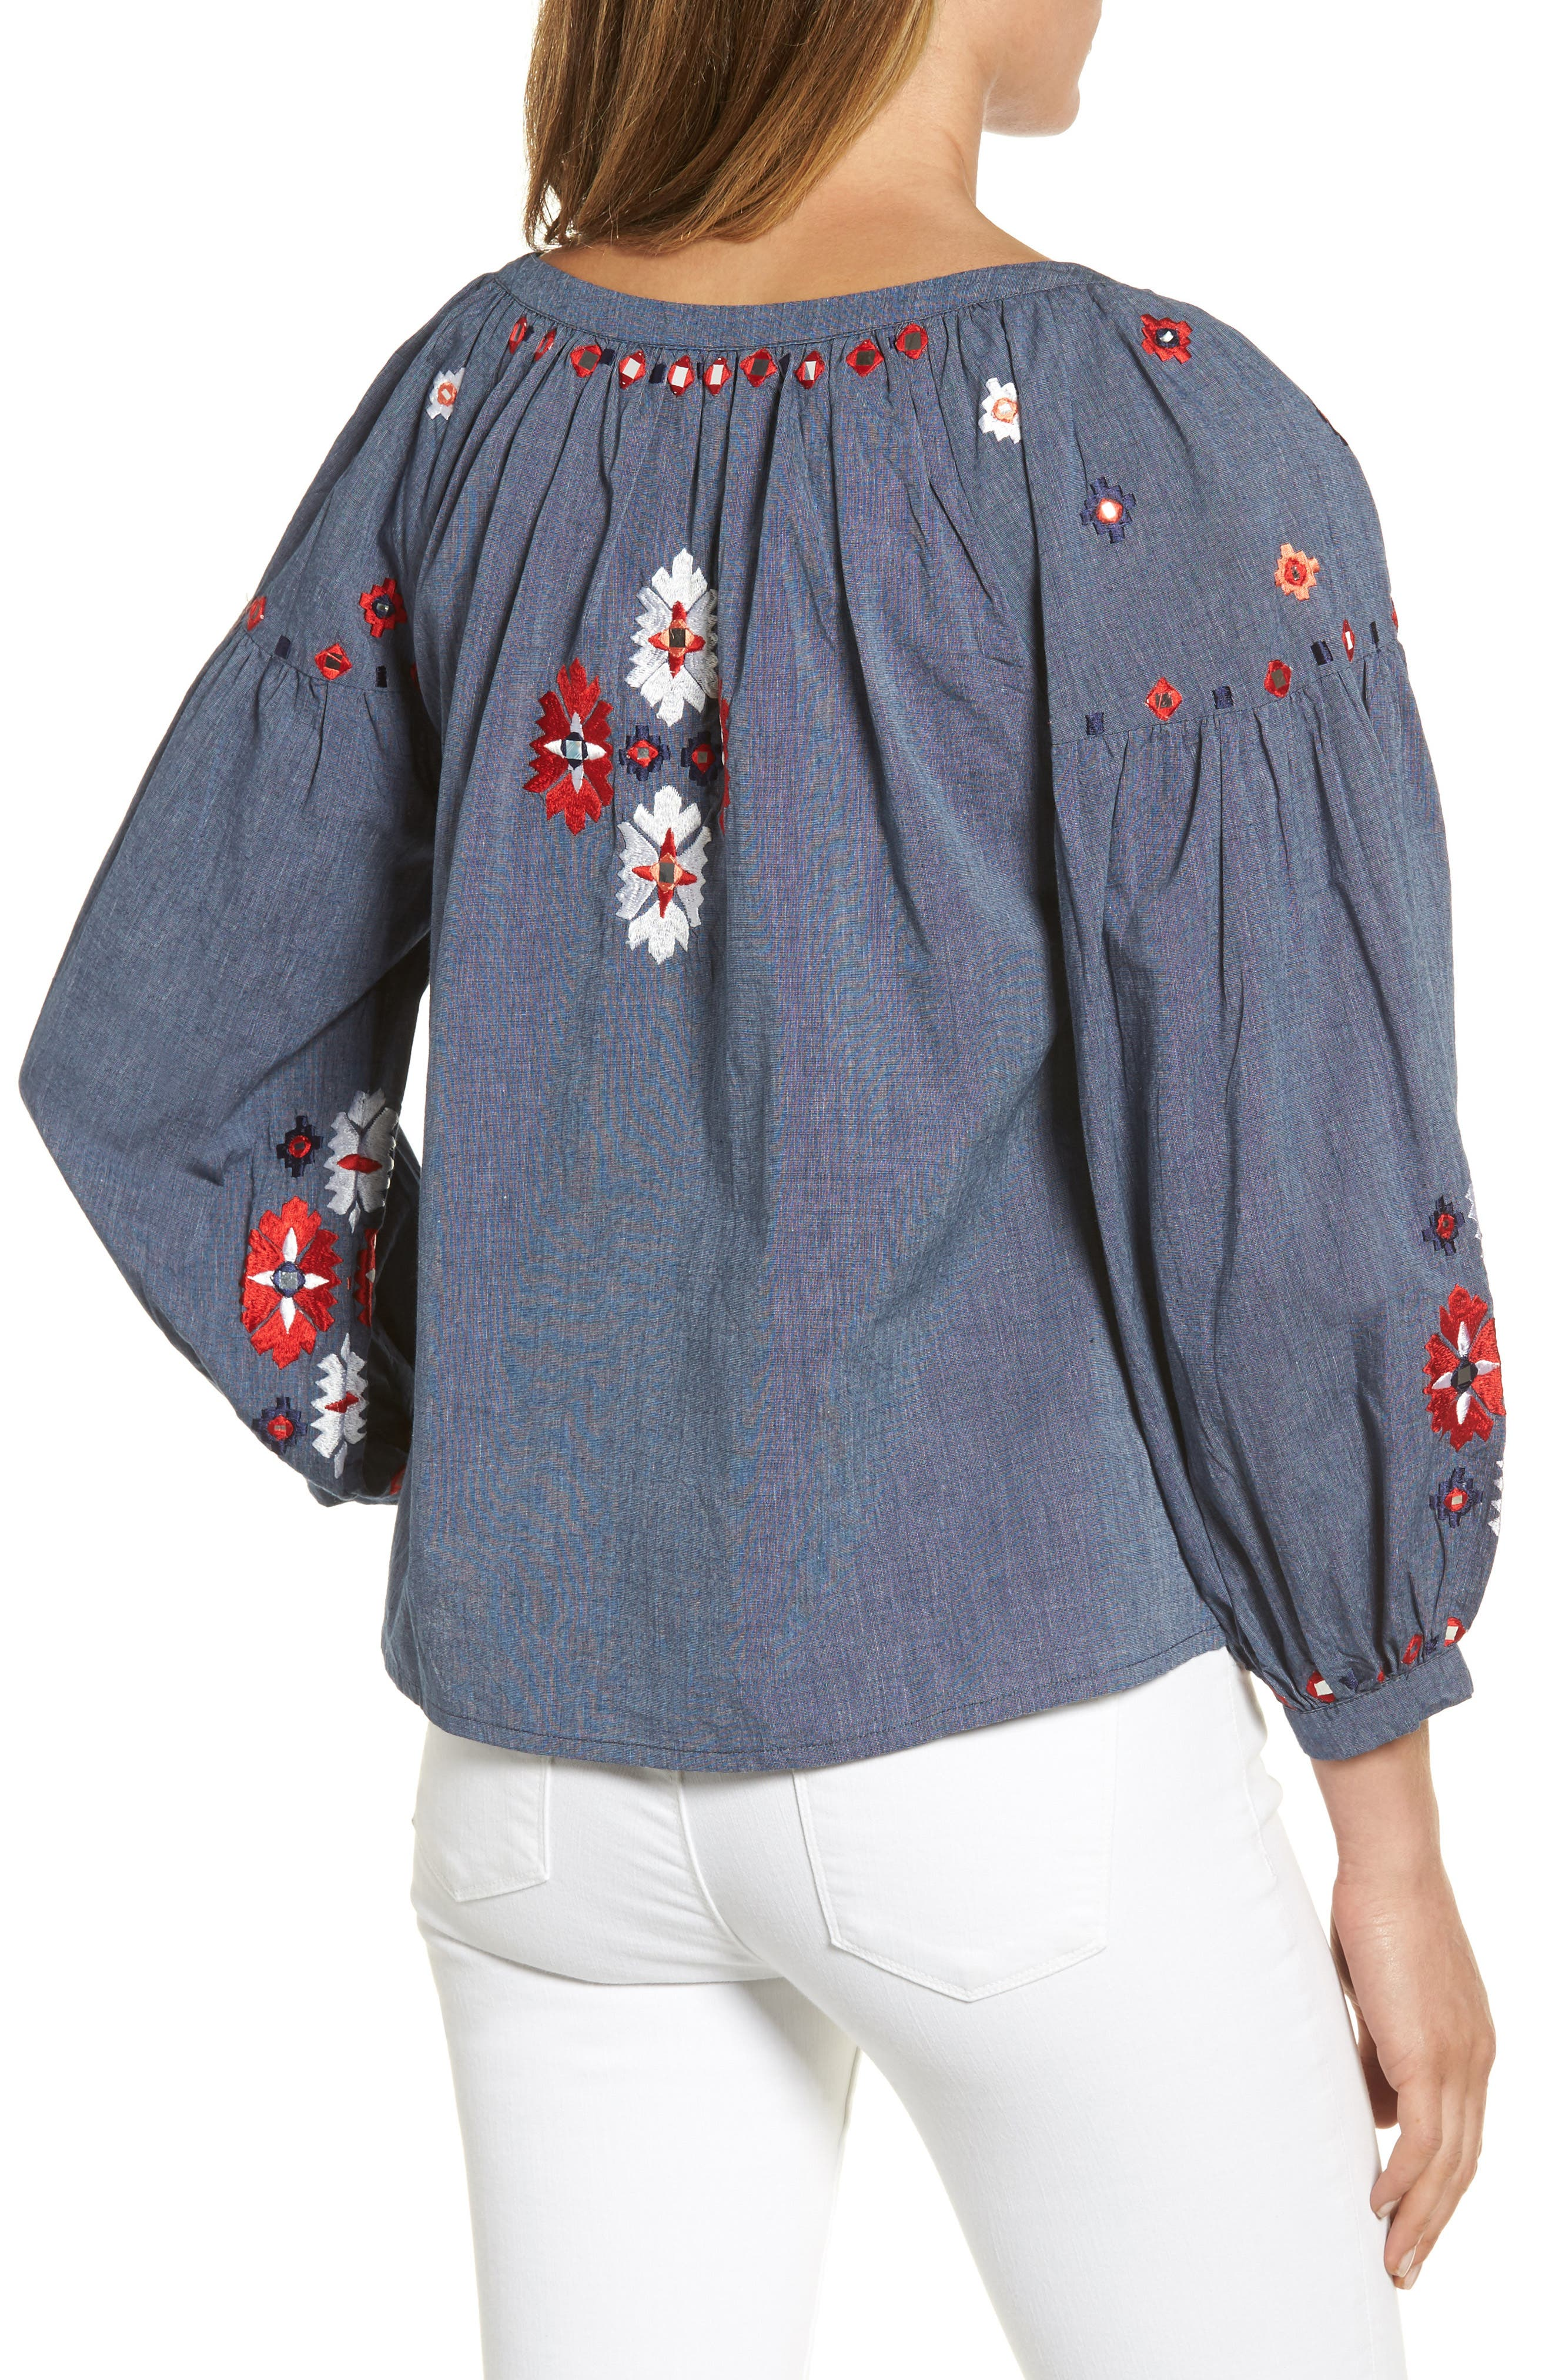 Elora Embroidered Chambray Top,                             Alternate thumbnail 2, color,                             DENIM